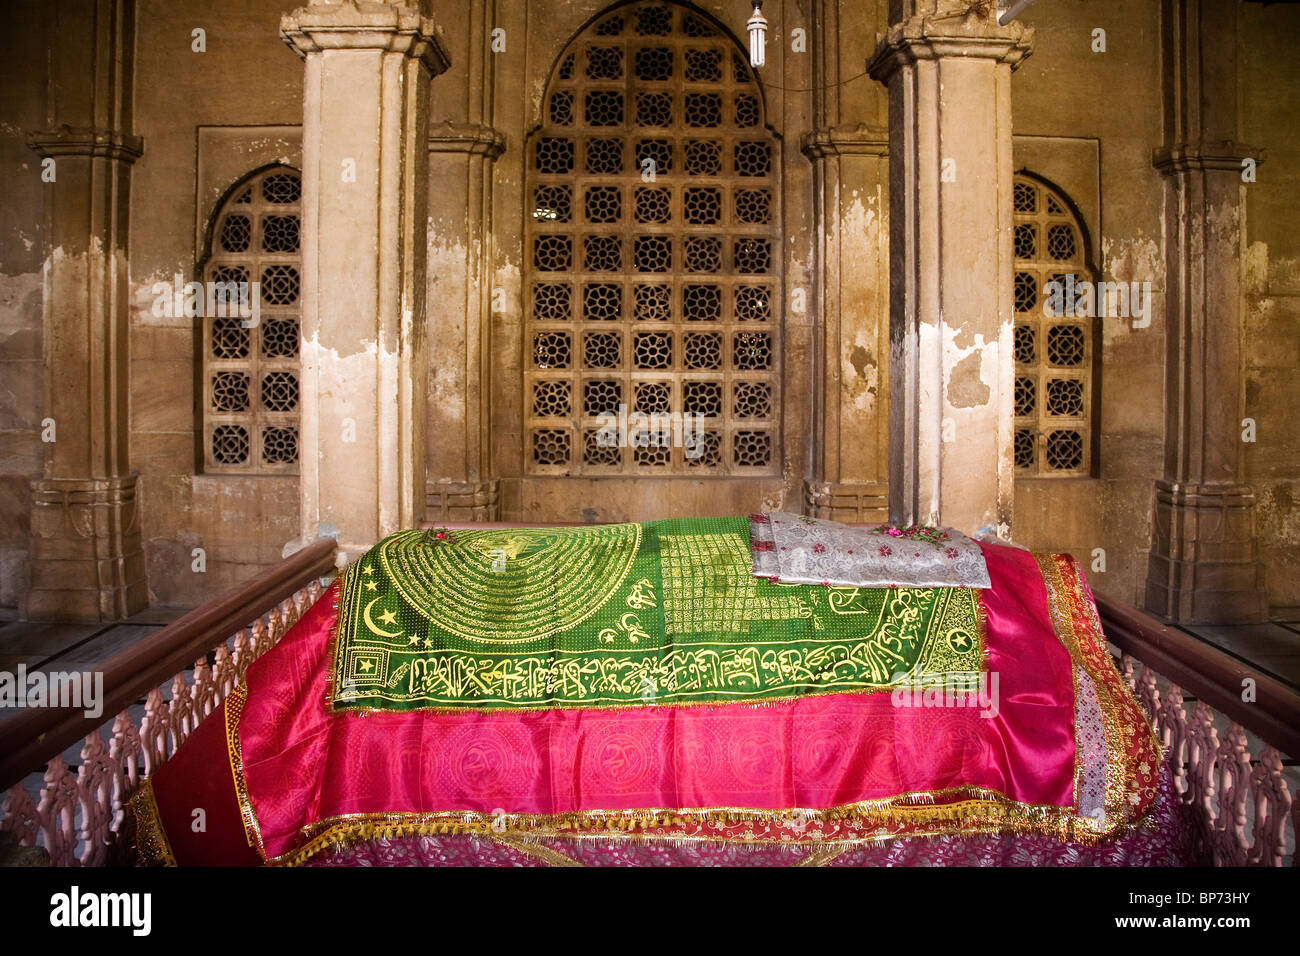 The Mausoleum of Sultan Ahmed Shah in Ahmedabad, Gujarat, India. - Stock Image